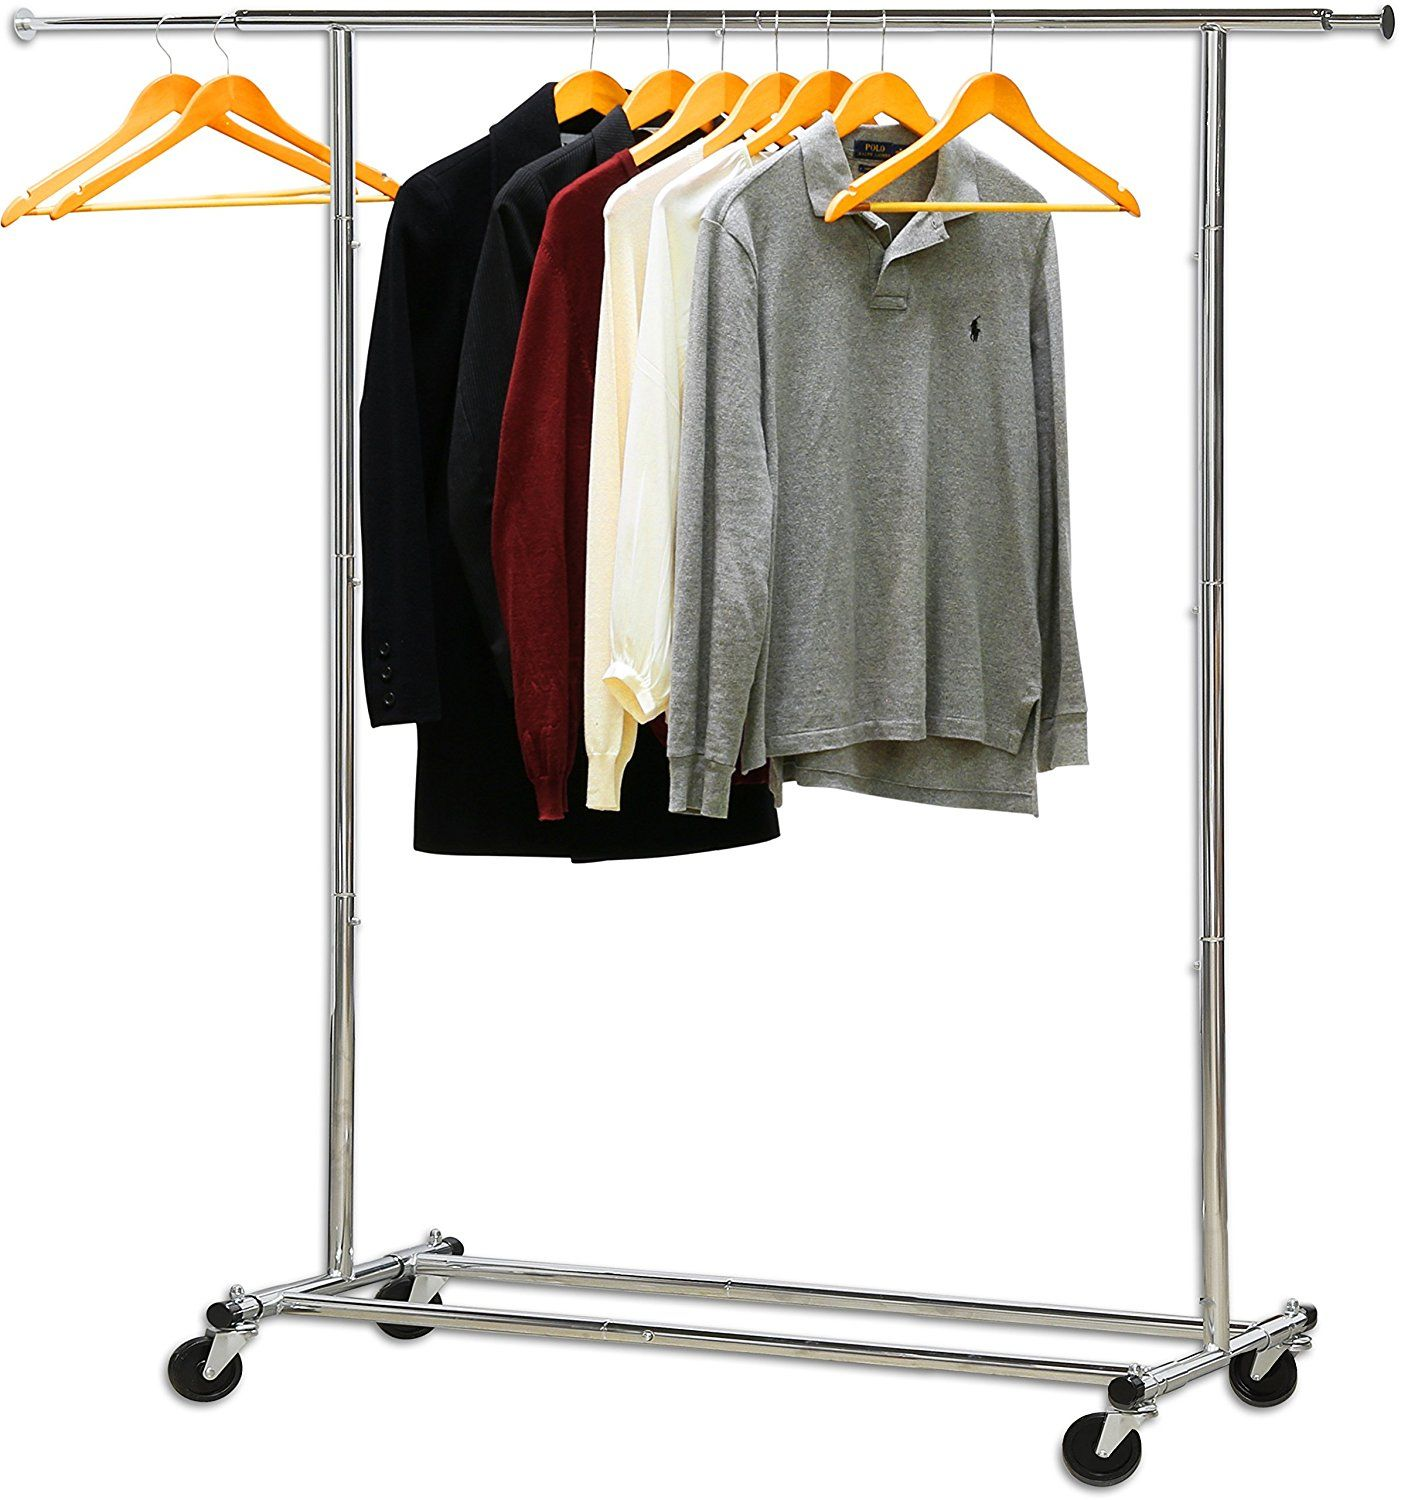 Hang Backdrops Flags Reflectors Heavy Duty Clothing Garment Rack Rod Extendable 35ft To 55ft Height 5ft Collapsible Steel